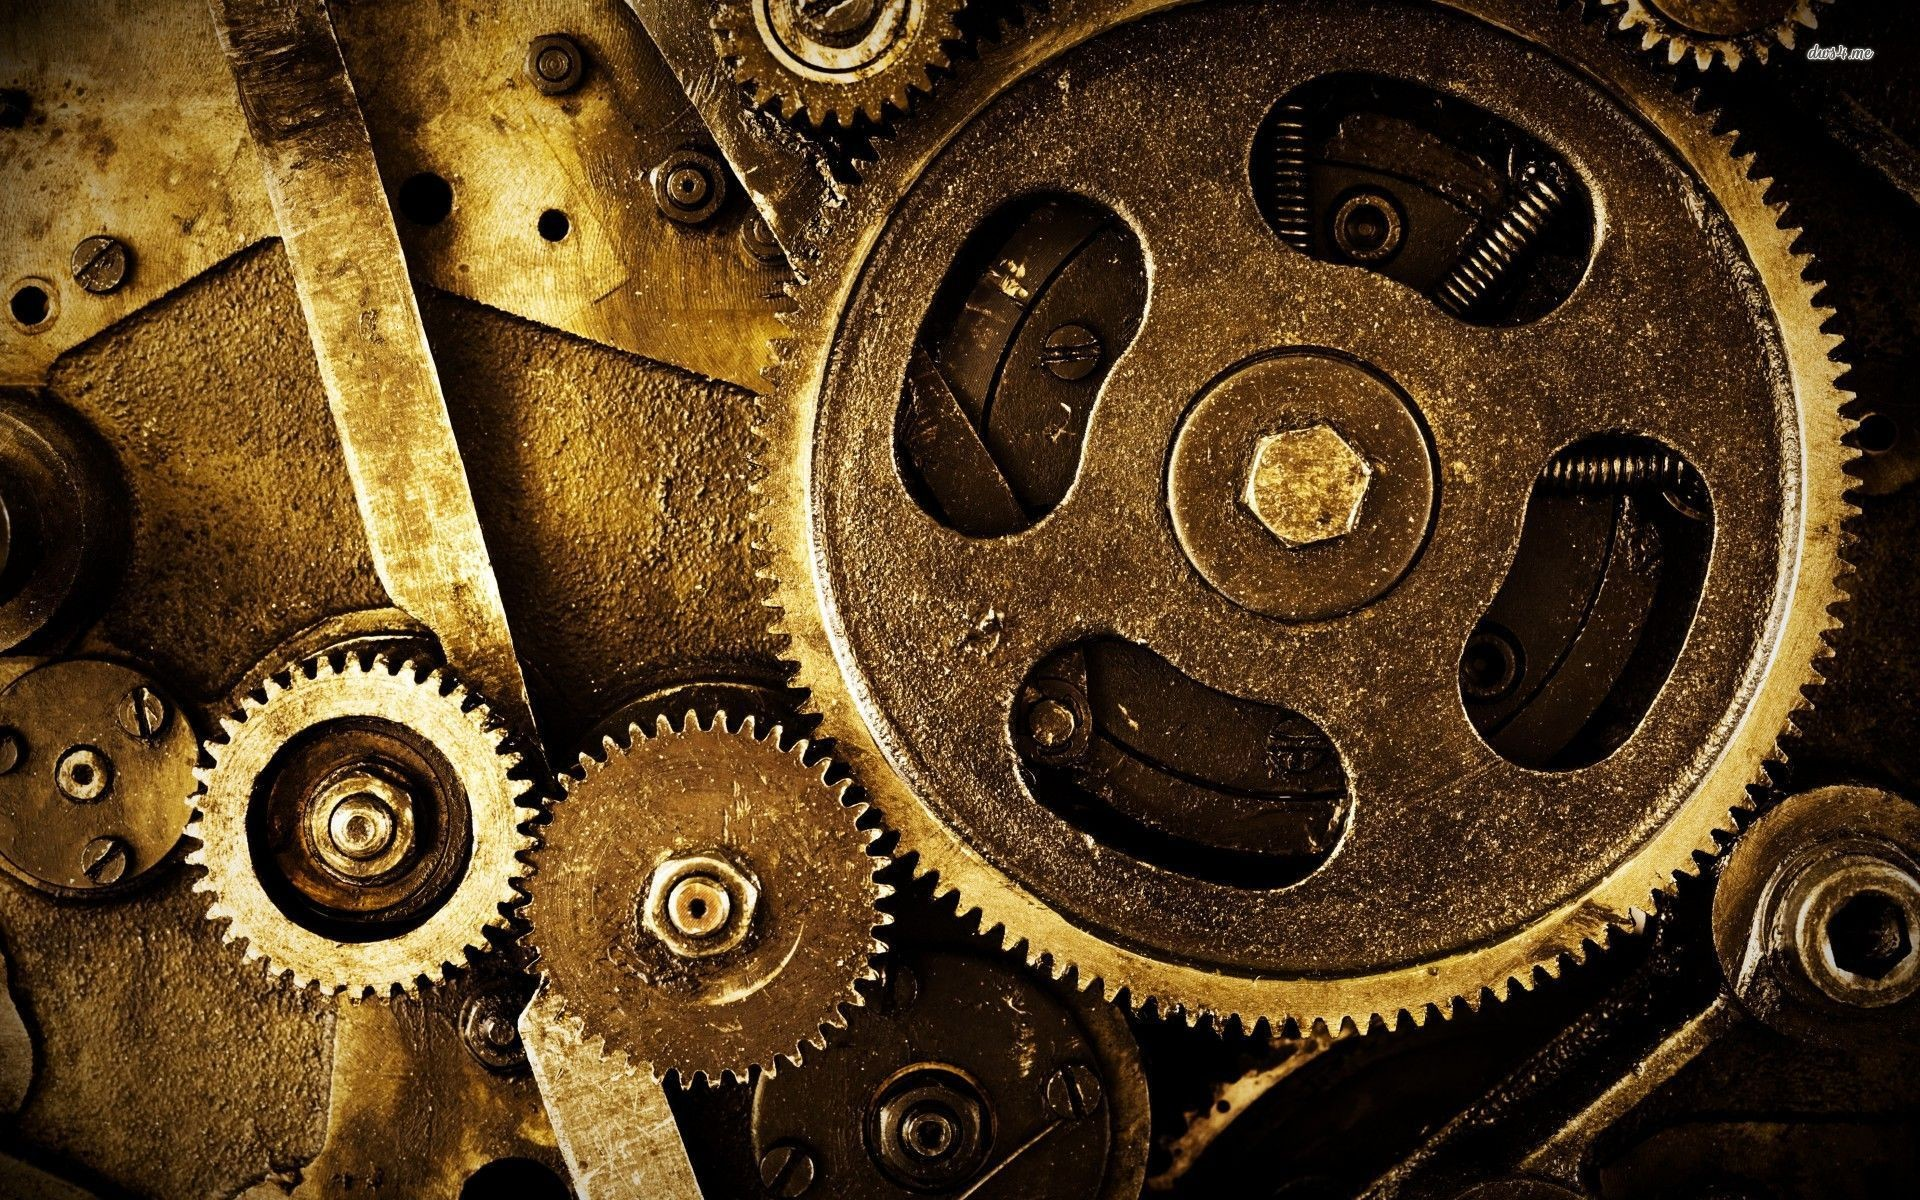 1920x1200 Mechanical Gears Wallpaper Hd Gears a machine is any device